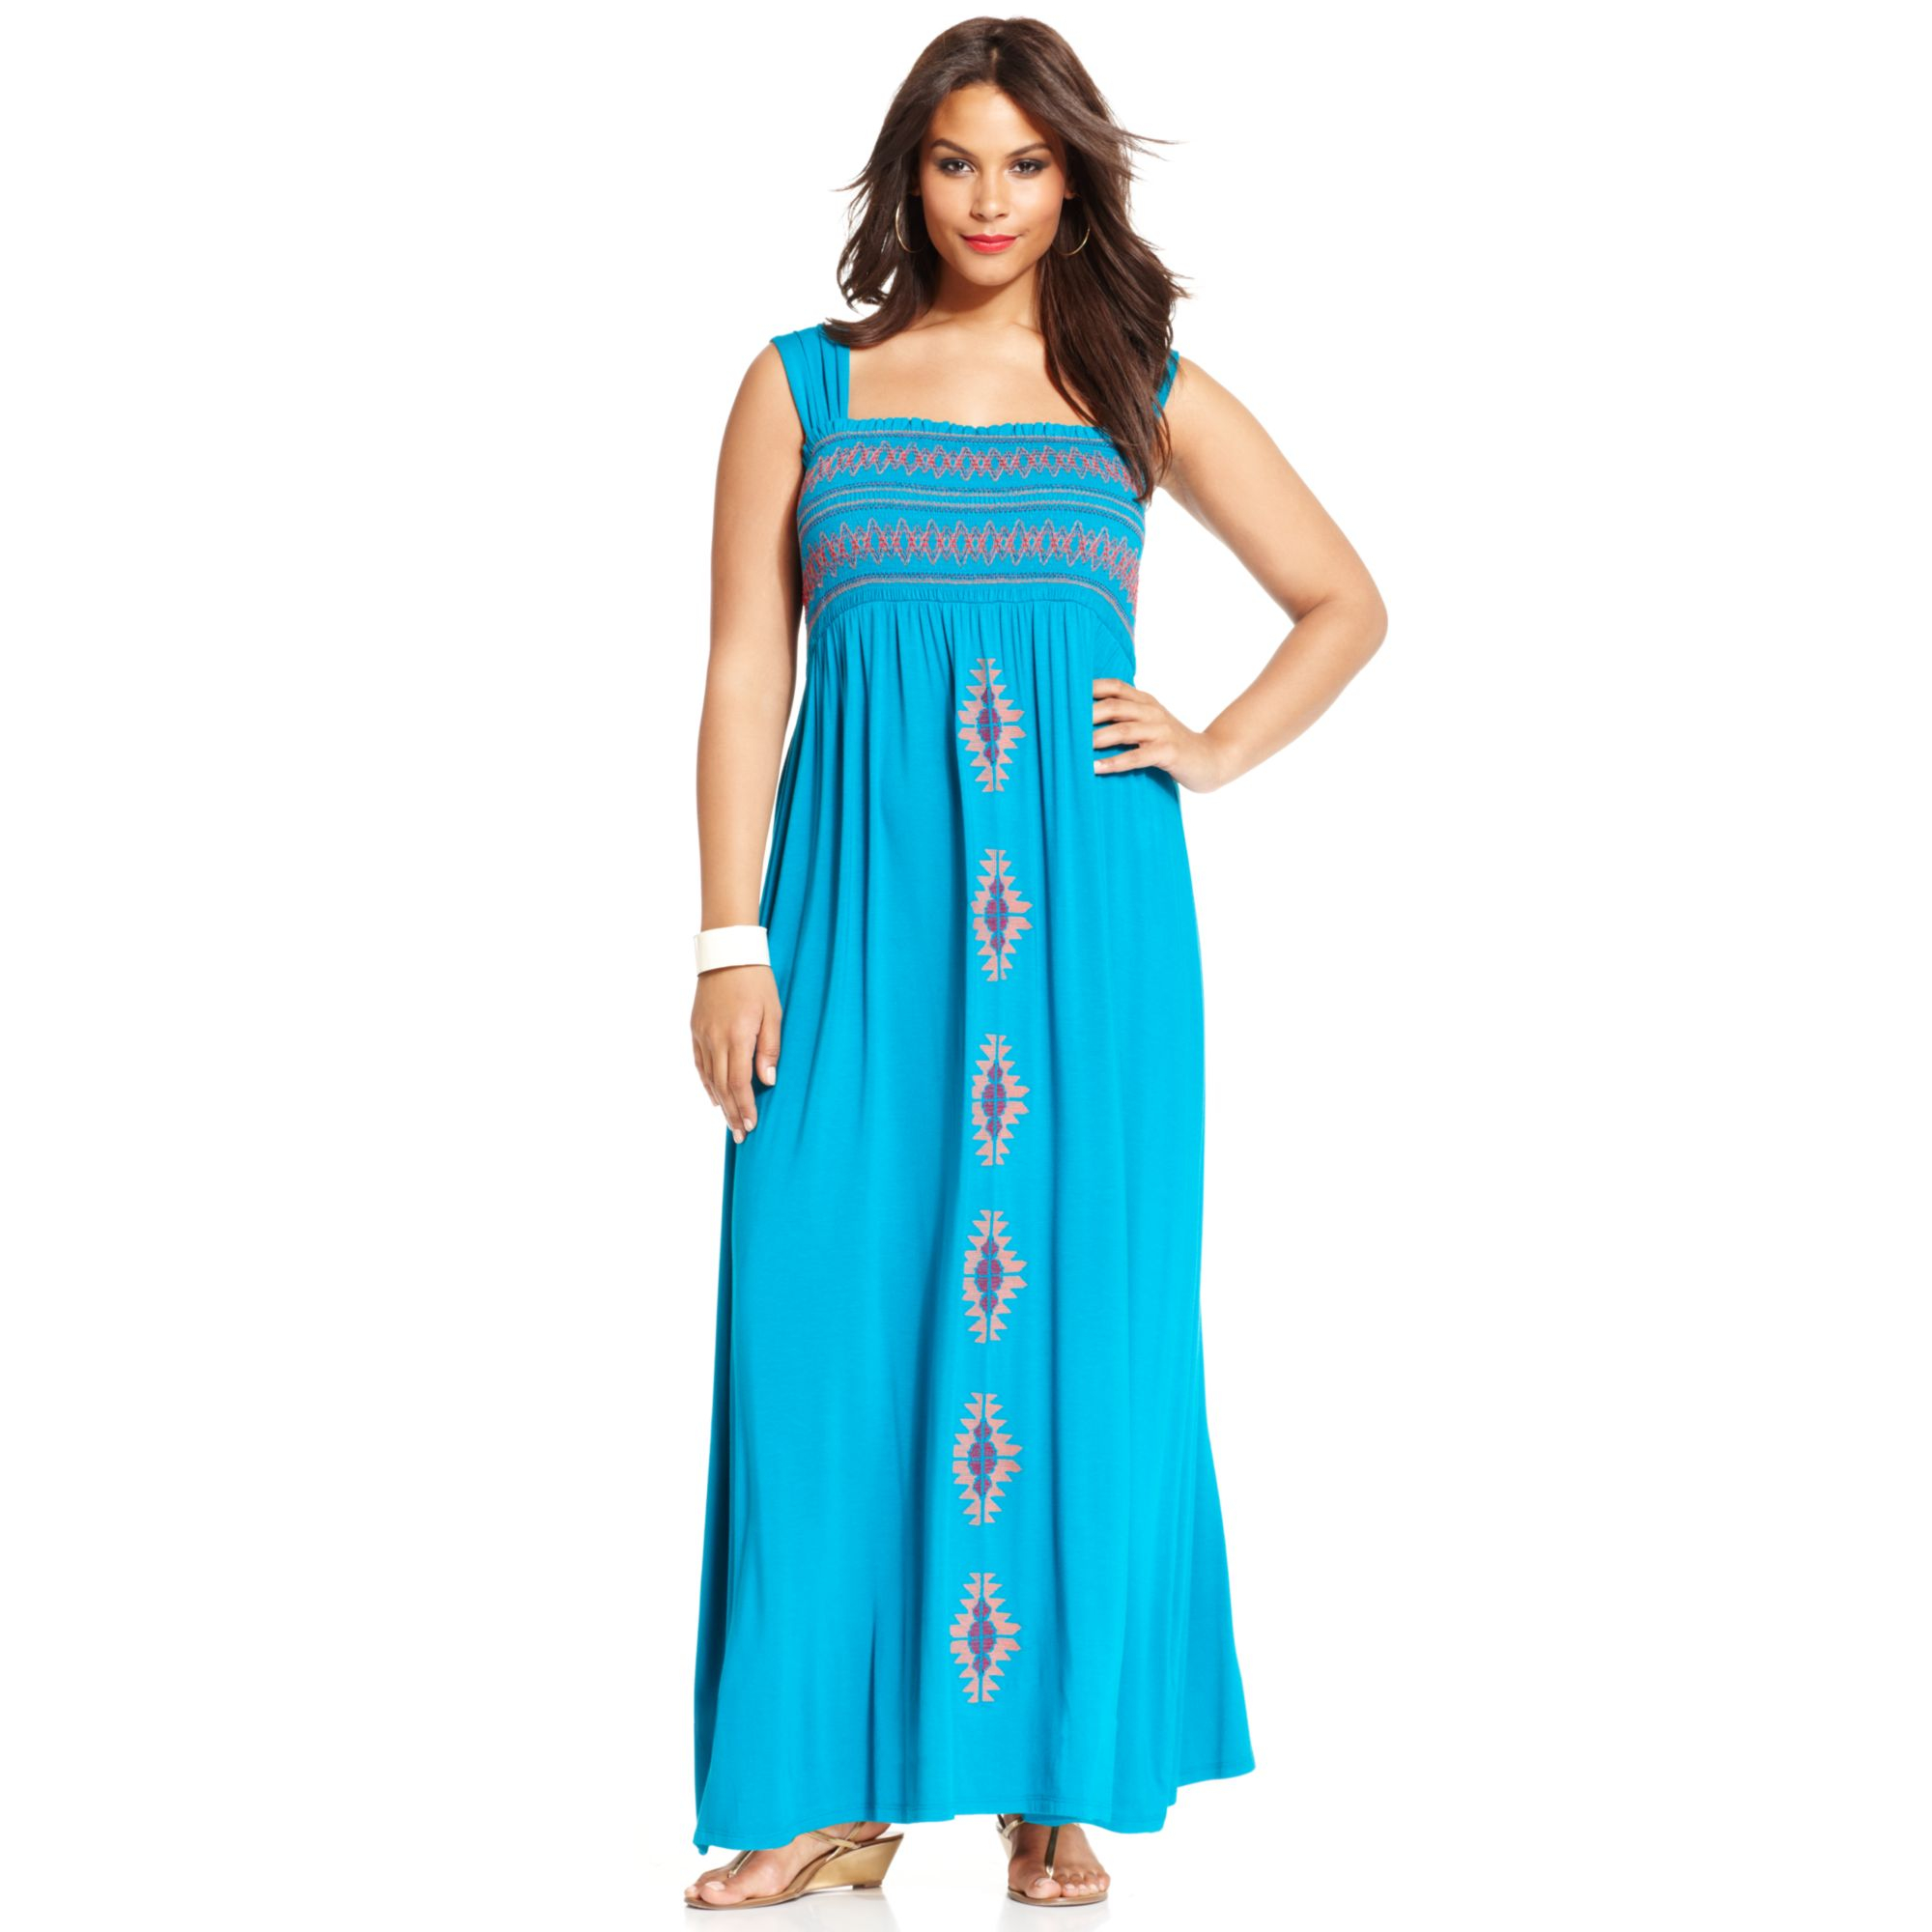 7edcdec2c8f Spense Plus Size Embroidered Smocked Maxi Dress in Blue - Lyst